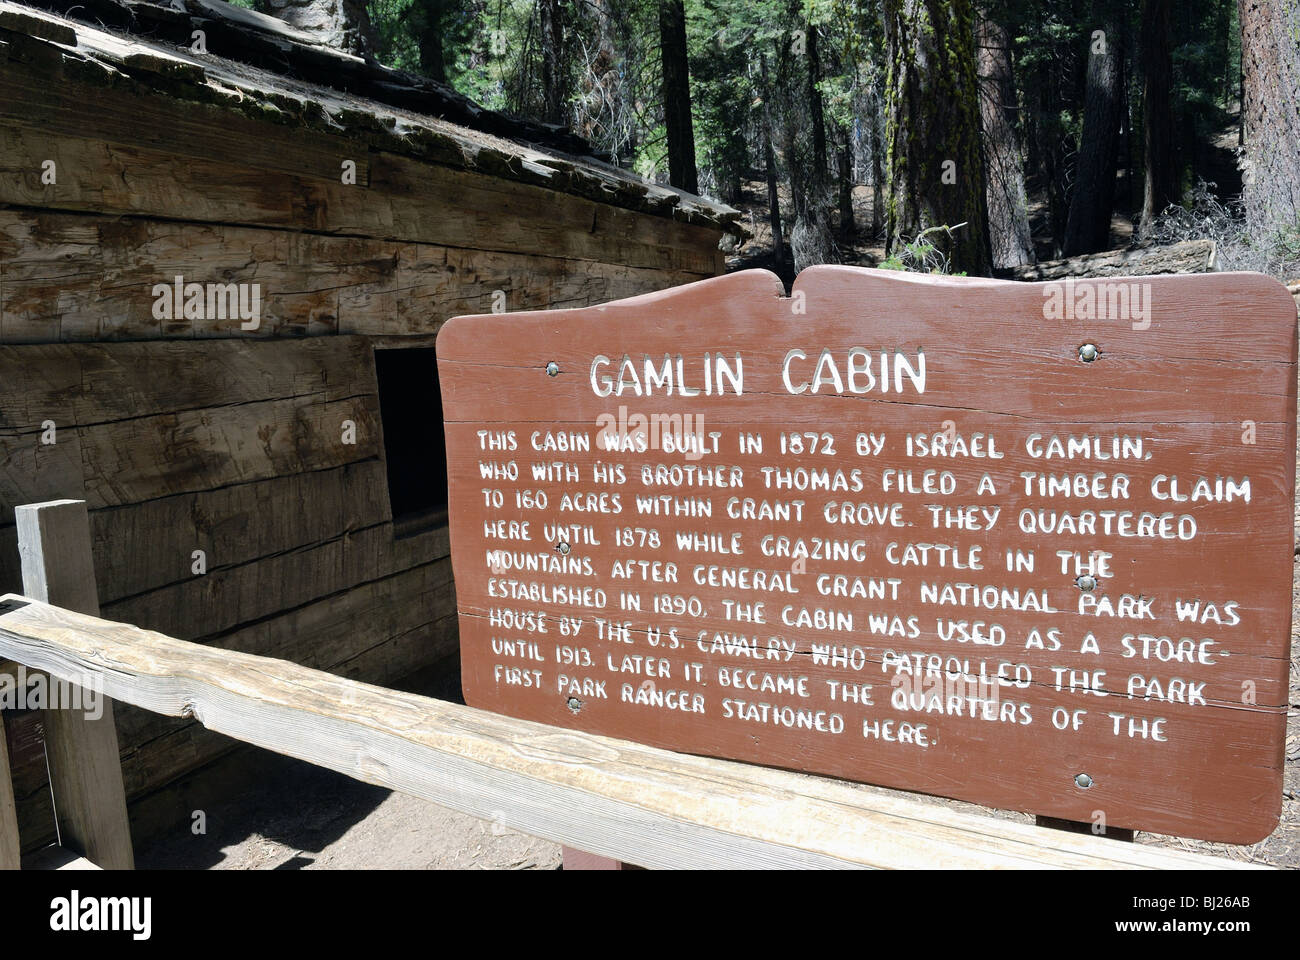 commons jpg sequoia national knapps park wikimedia cabins kings canyon in wiki file cabin